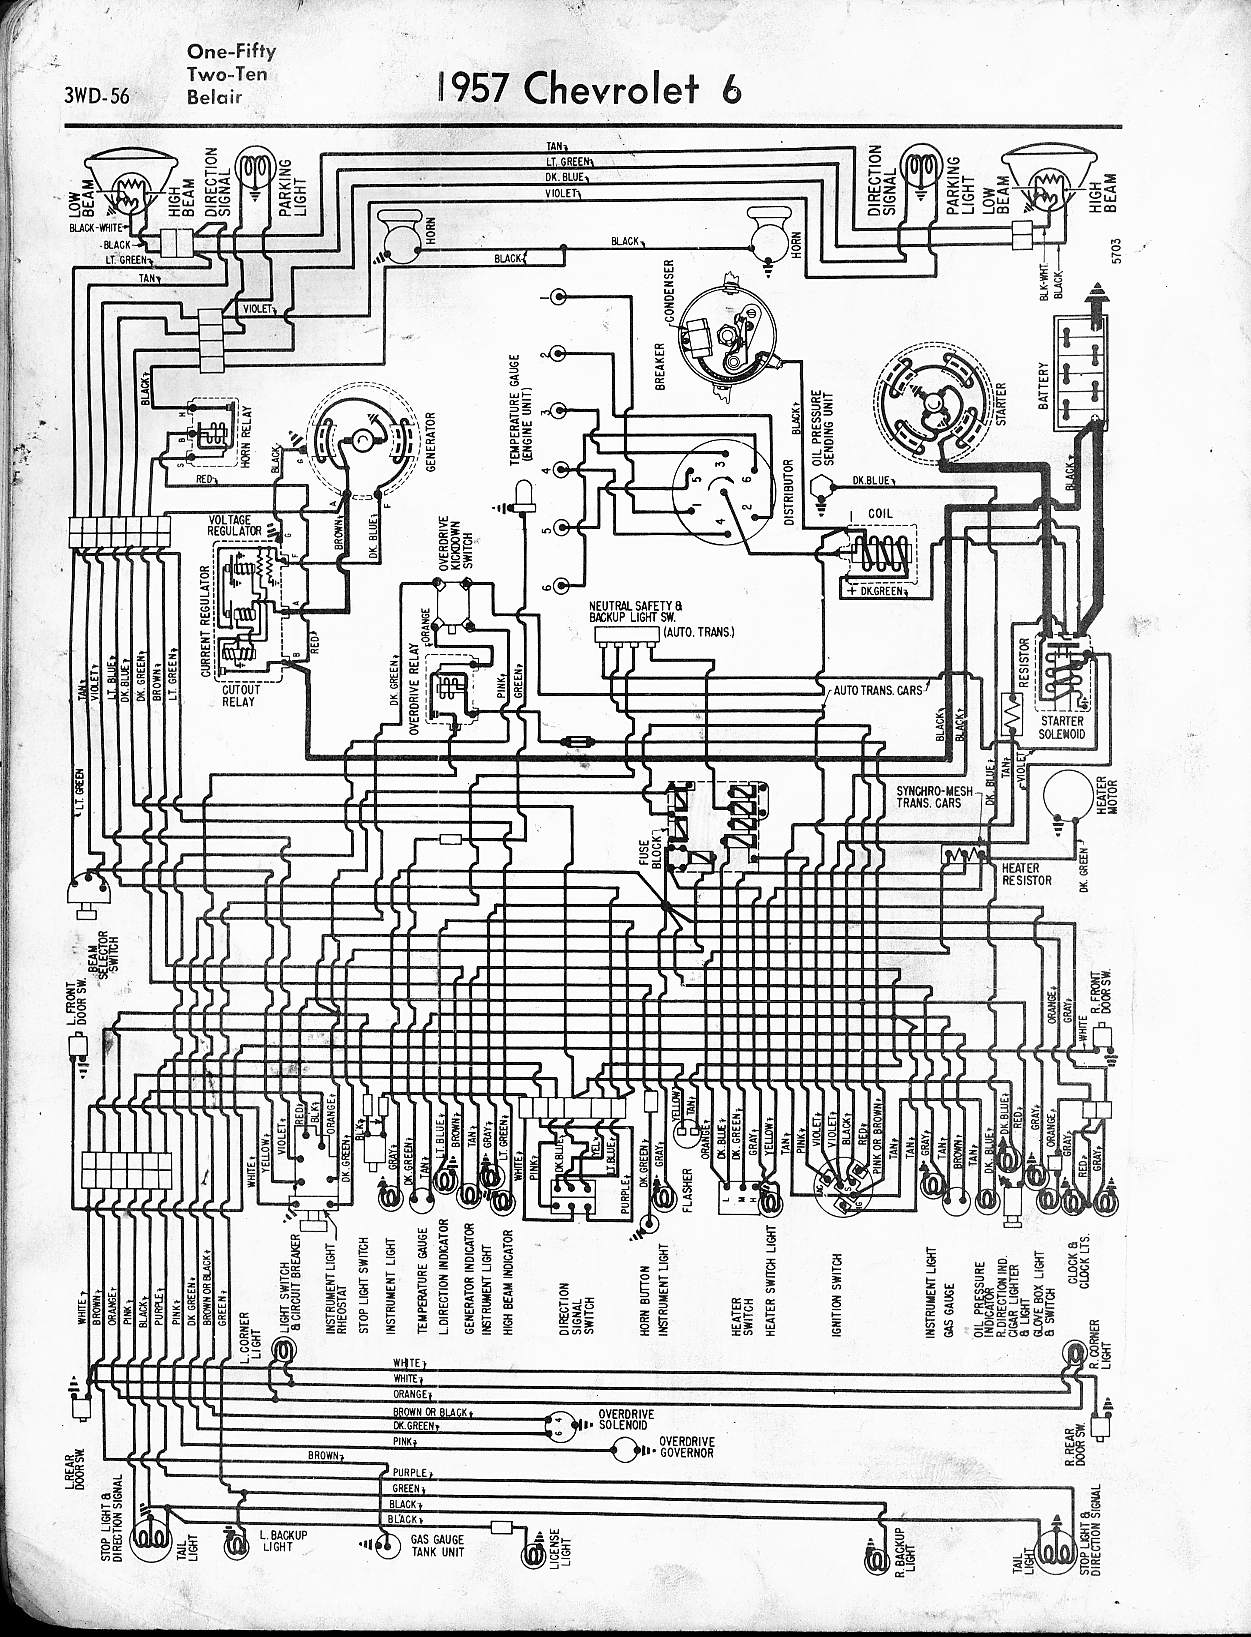 57 chevy wiring diagram wiring diagram 1957 chevrolet